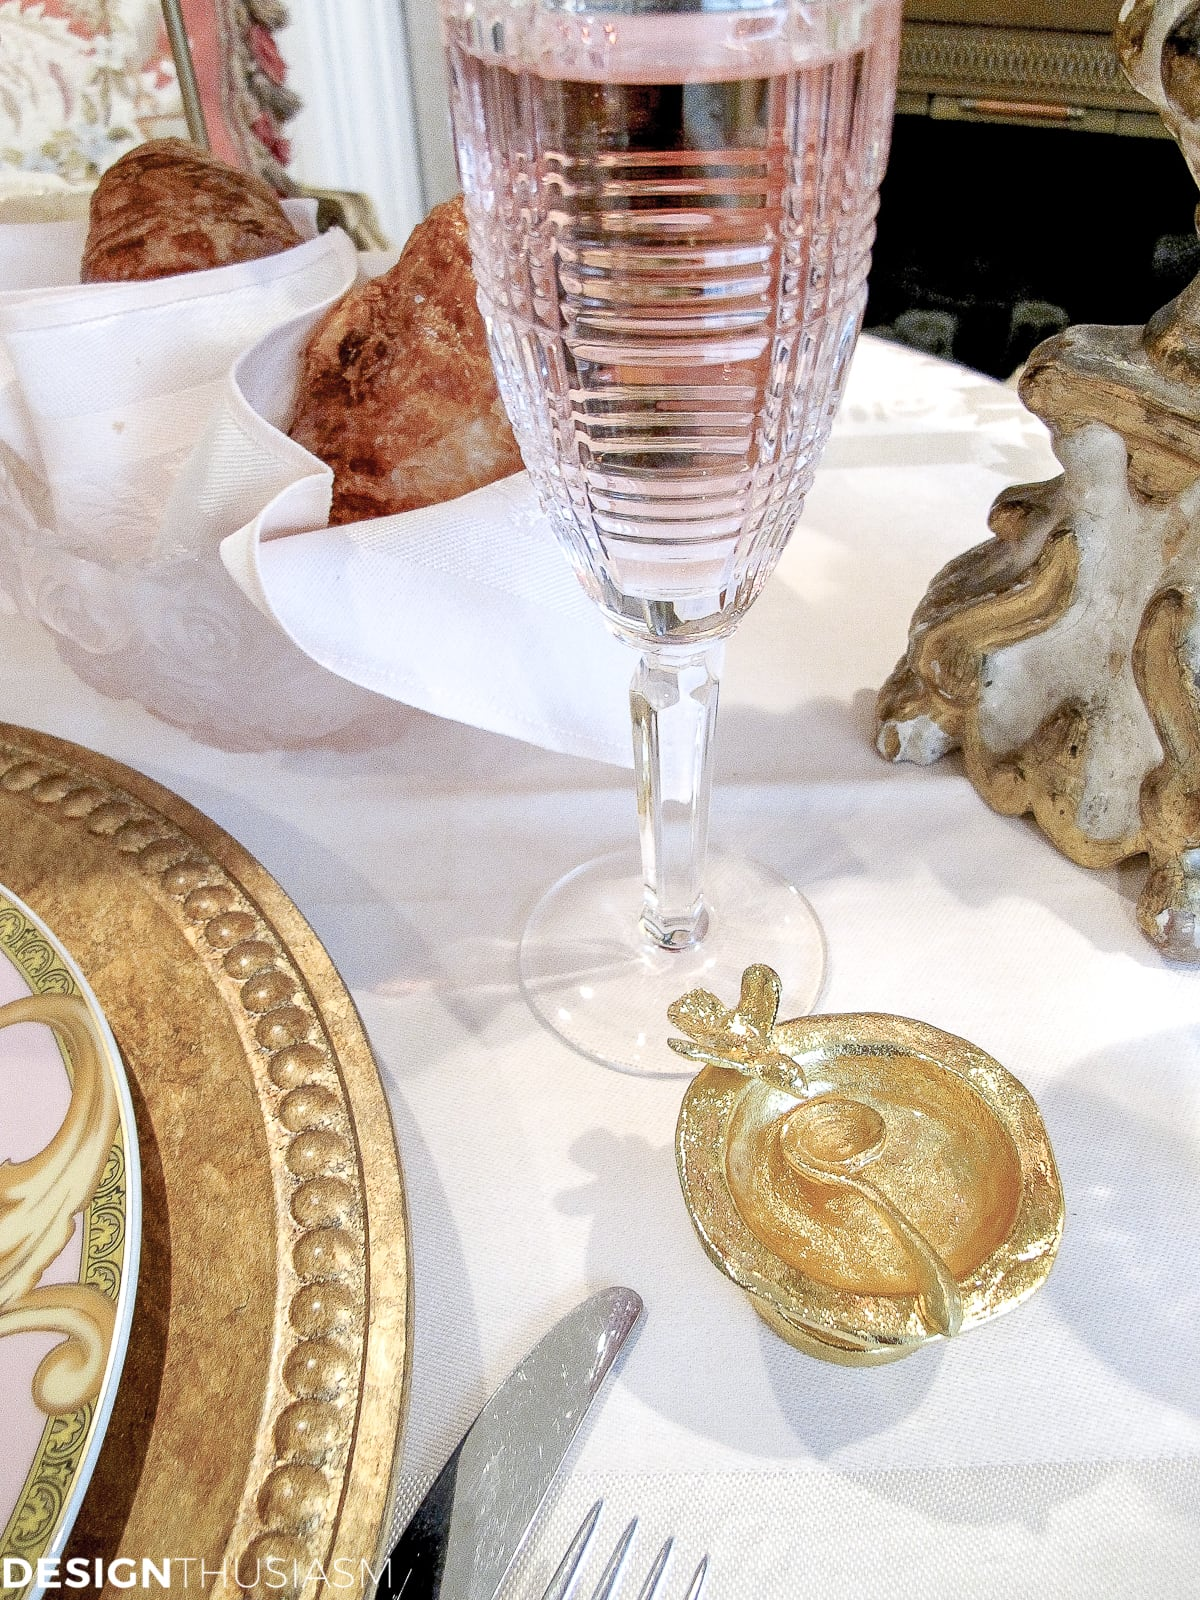 Tea party table setting with champagne flutes and gold salt cellar